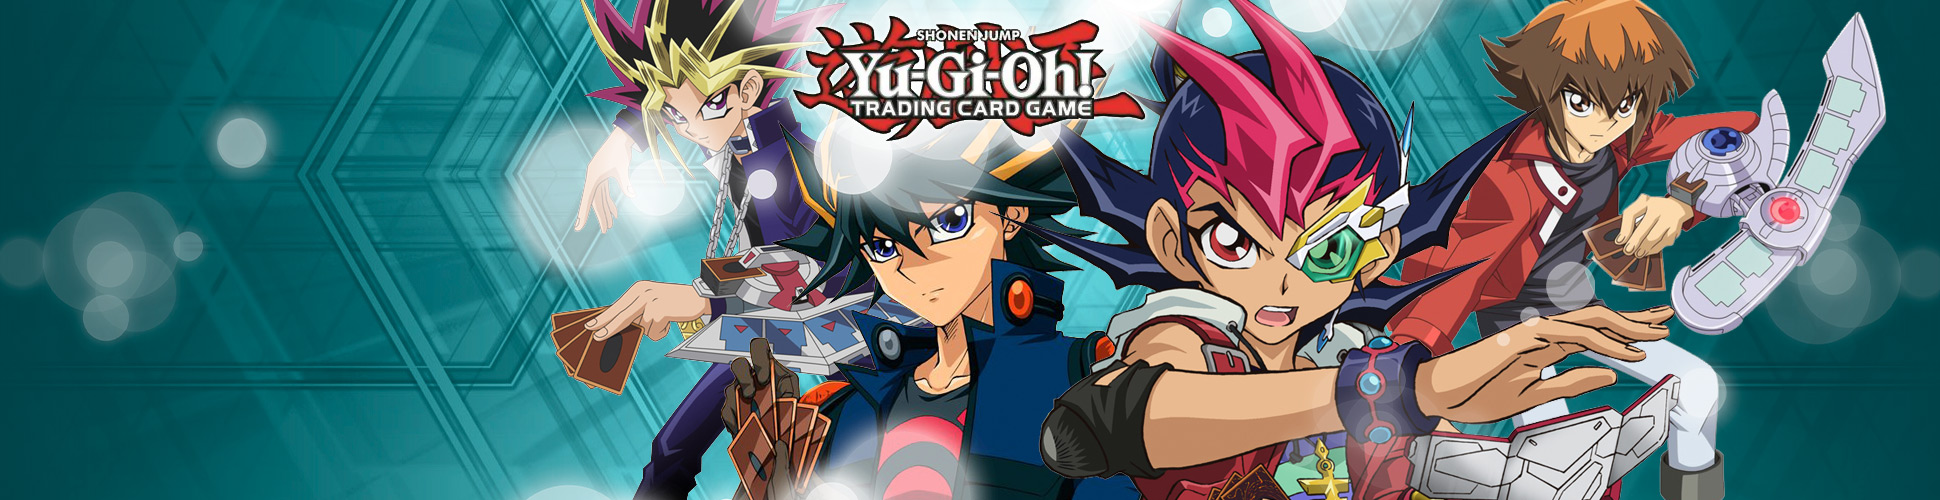 Browse the latest Yu-Gi-Oh! sealed product!